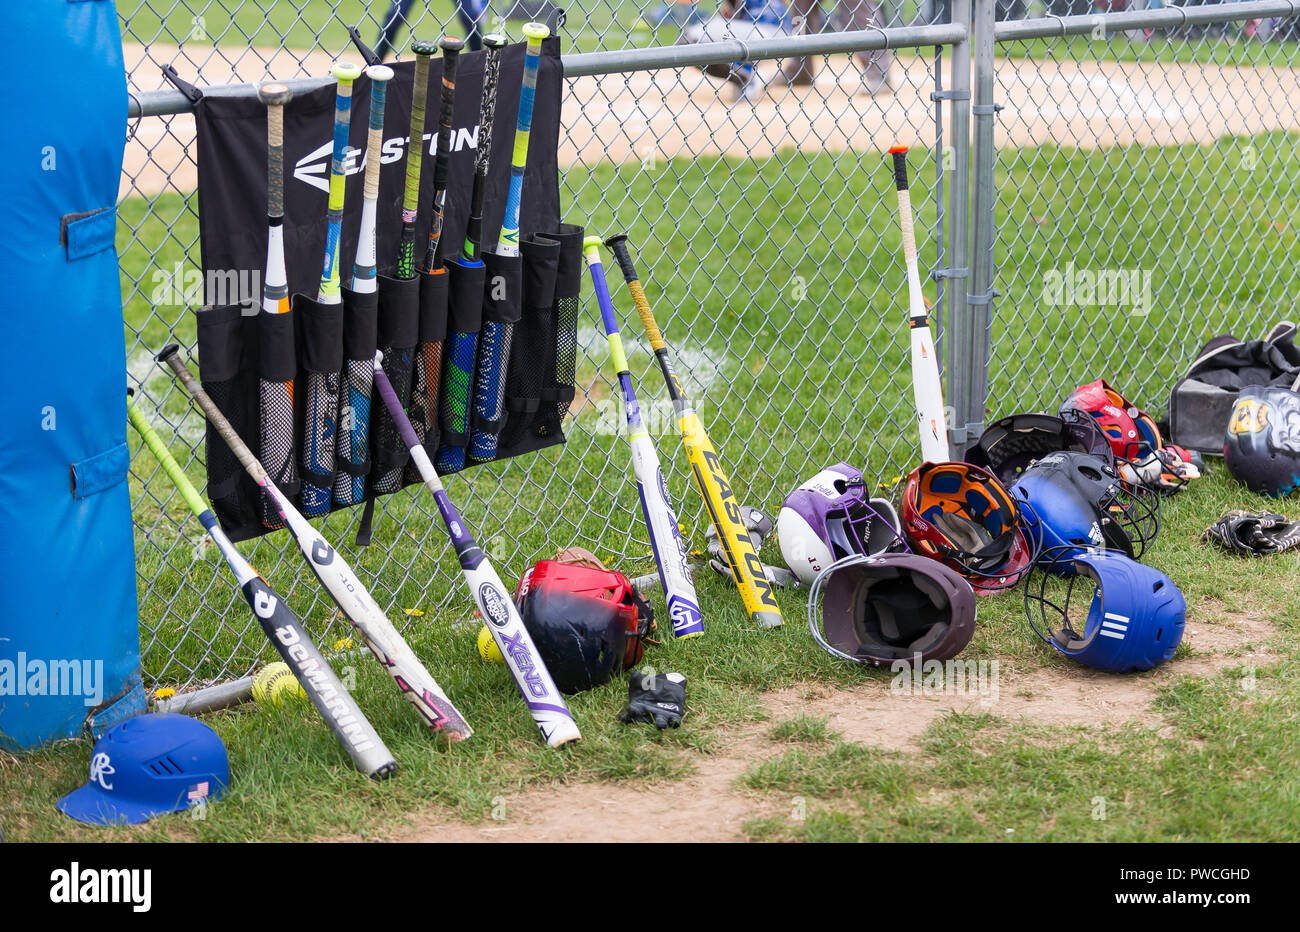 Softball equipment, ball, bats, helmets, scattered on ground and leaning on fence near dugout. - Stock Image